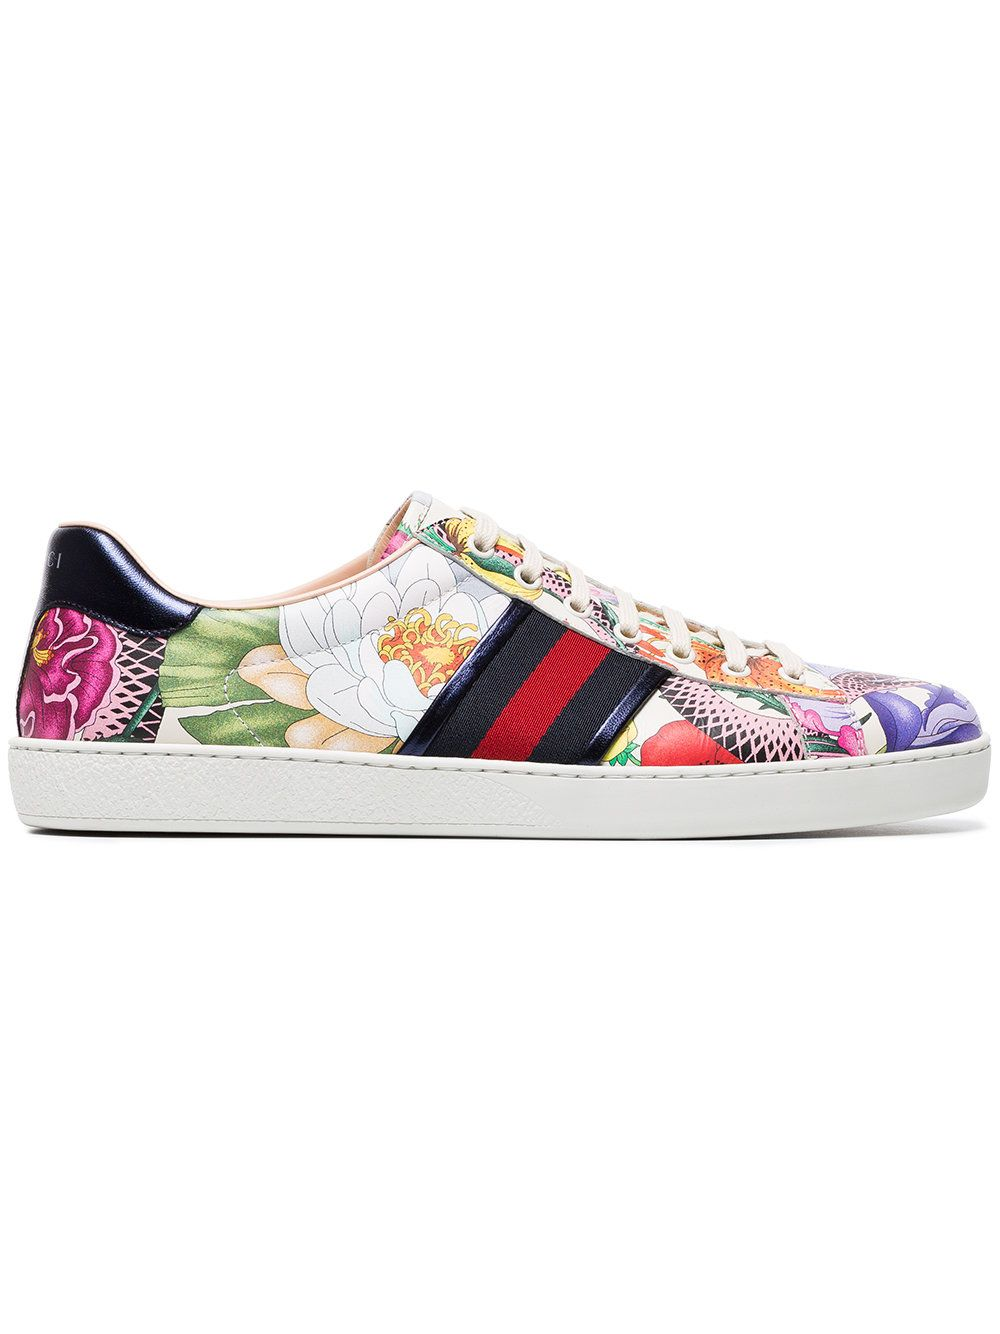 Multi Multi Floral Sneakers Ace White Leather Print Coloured AAafq8